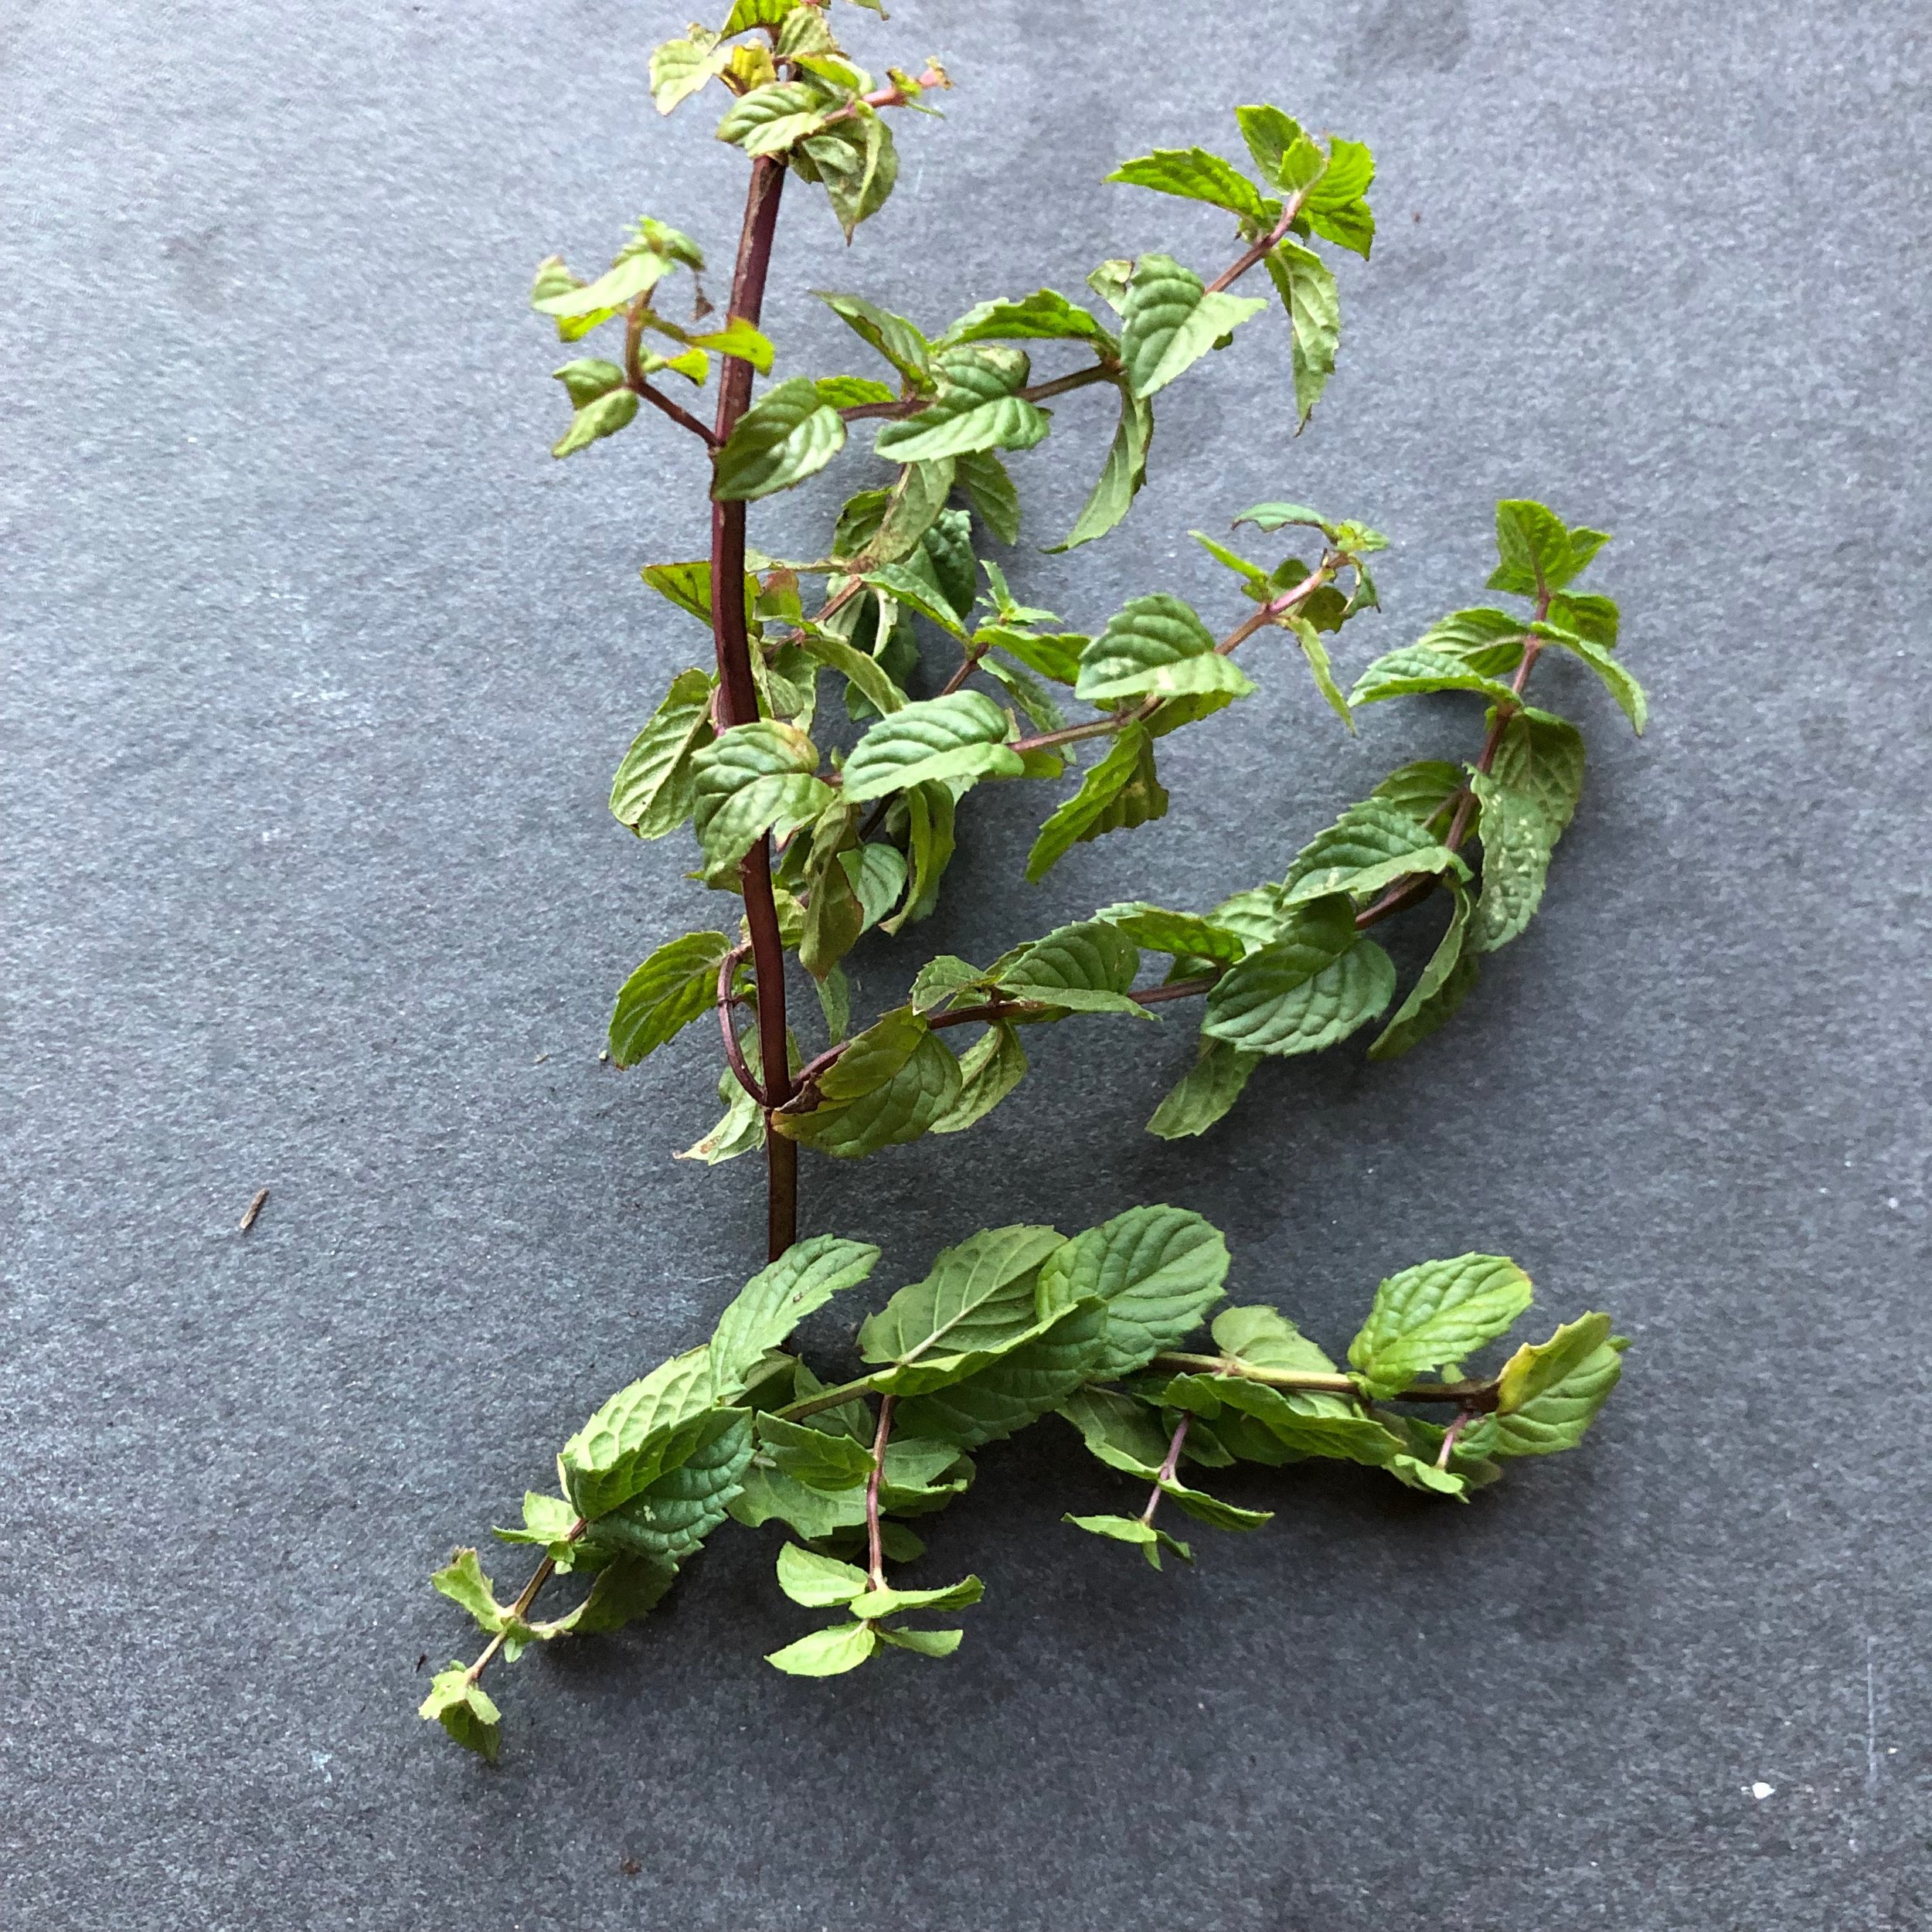 REF:62  'mentha.spp'  menthe, mint  flowers and leaves are edible. The leaves can be used to make a strong infusion of peppermint tea. Add torn leaves to strawberries, rice and couscous.